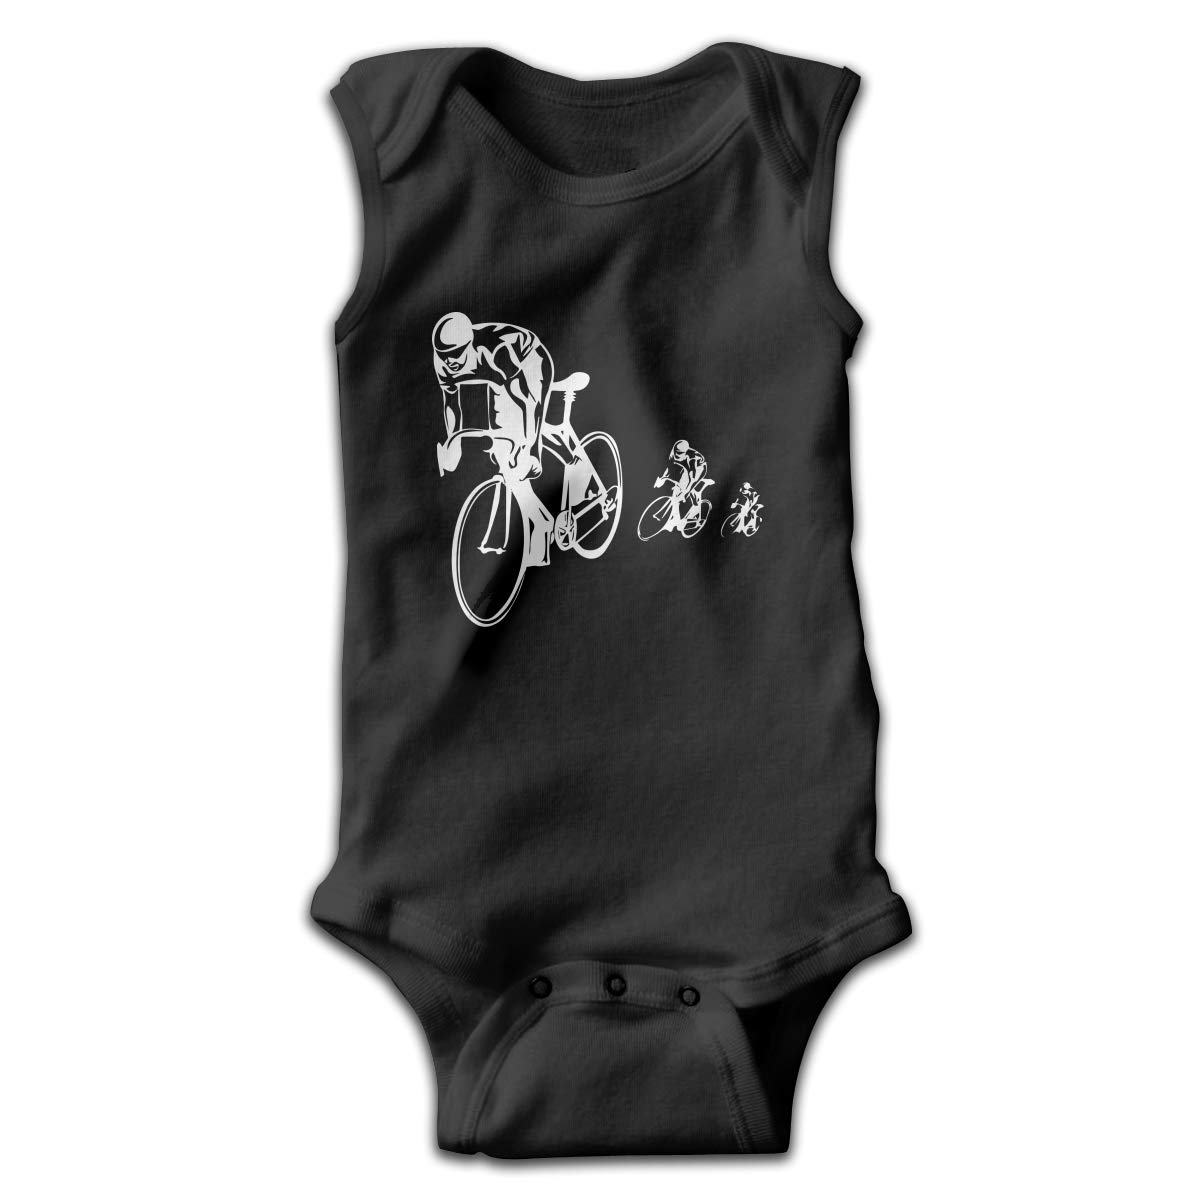 Bicycle Racing Cycling Baby Boys Girls Infant Crawling Suit Sleeveless Romper Jumpsuit